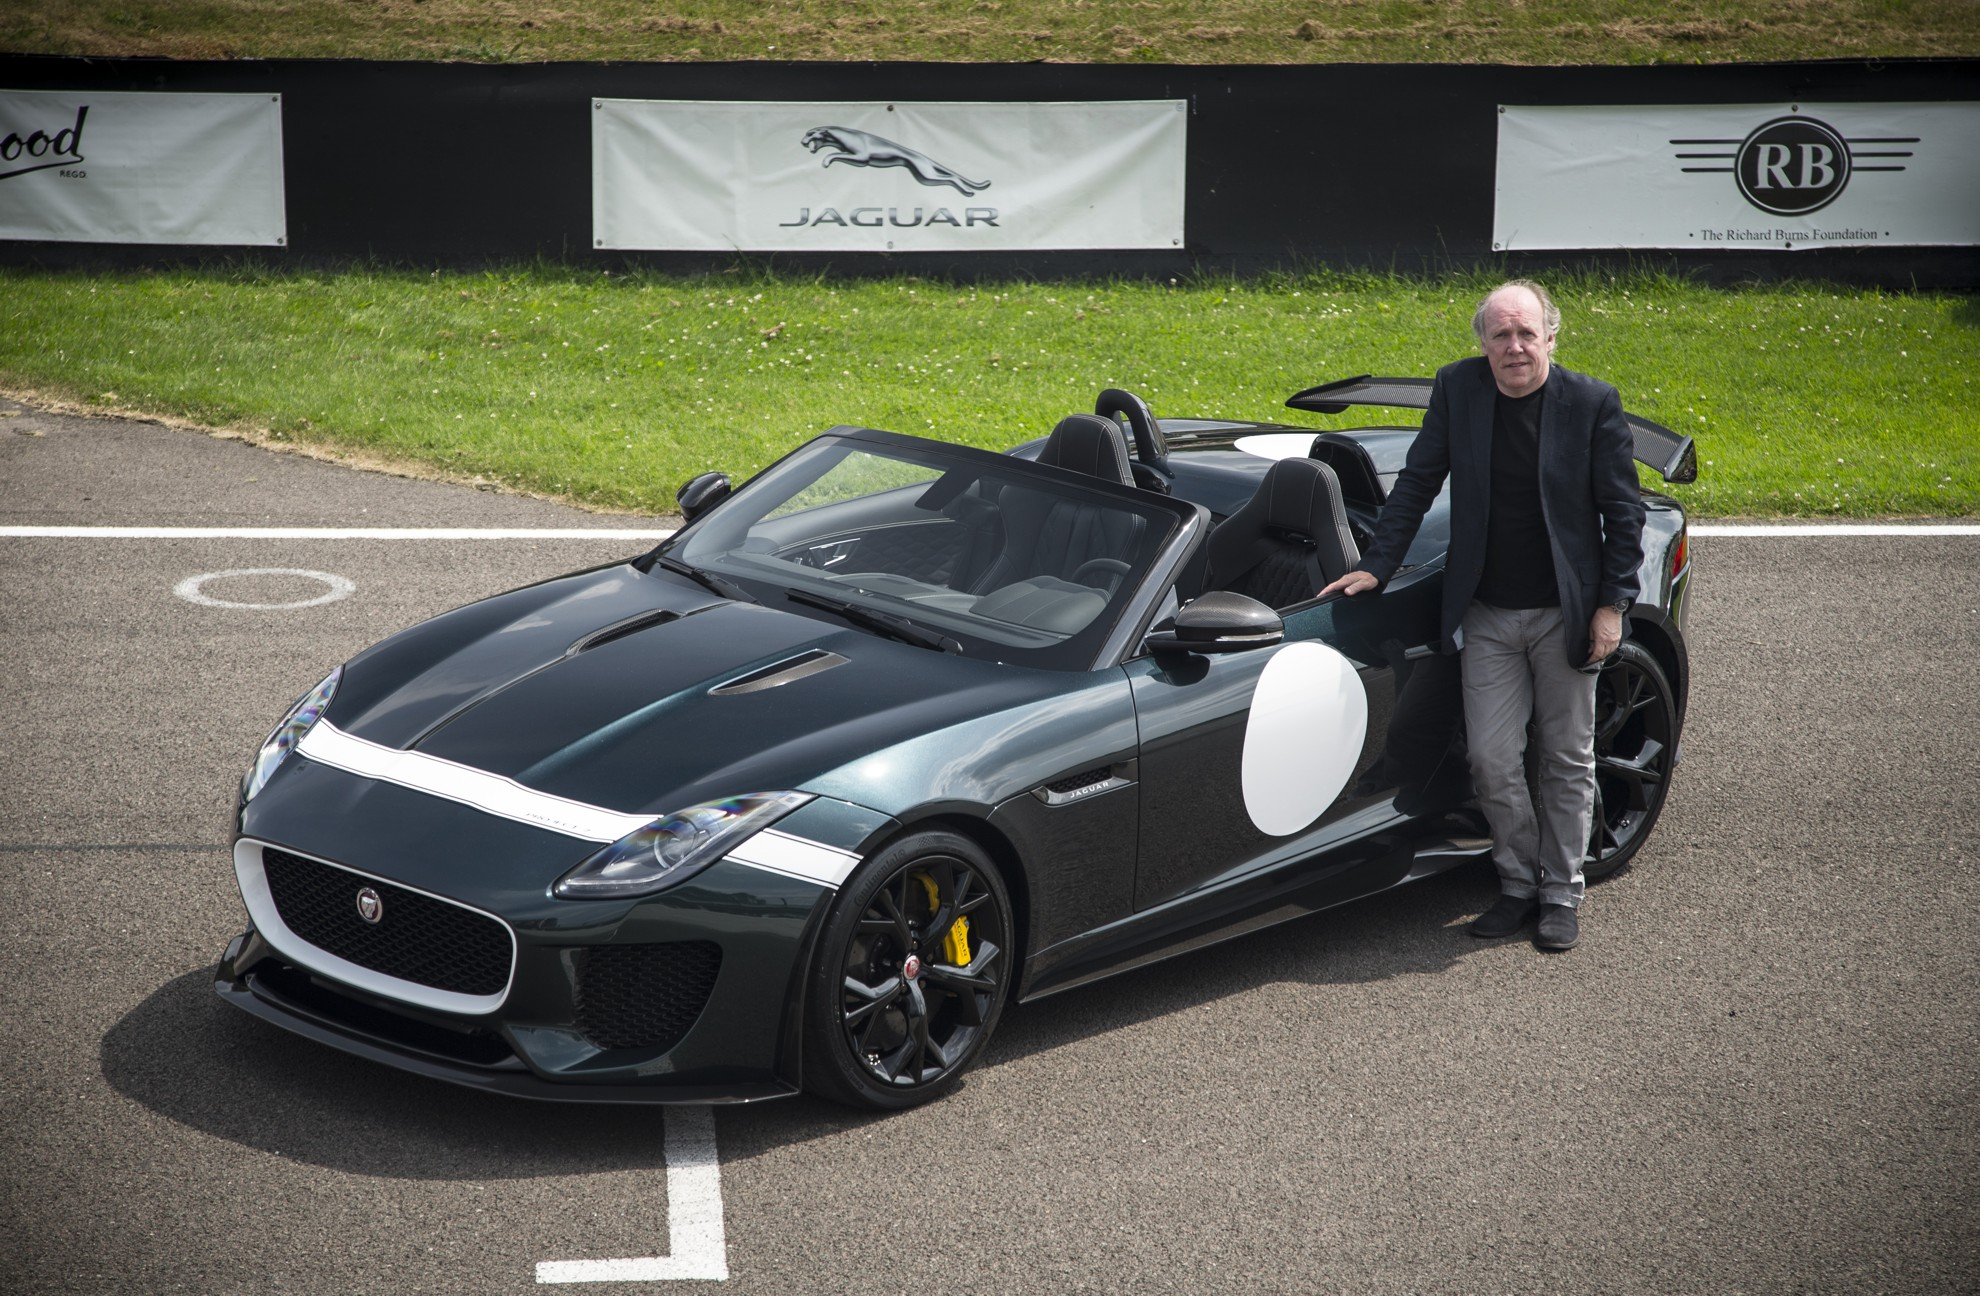 Jaguar Project 7 Design Director Ian Callum